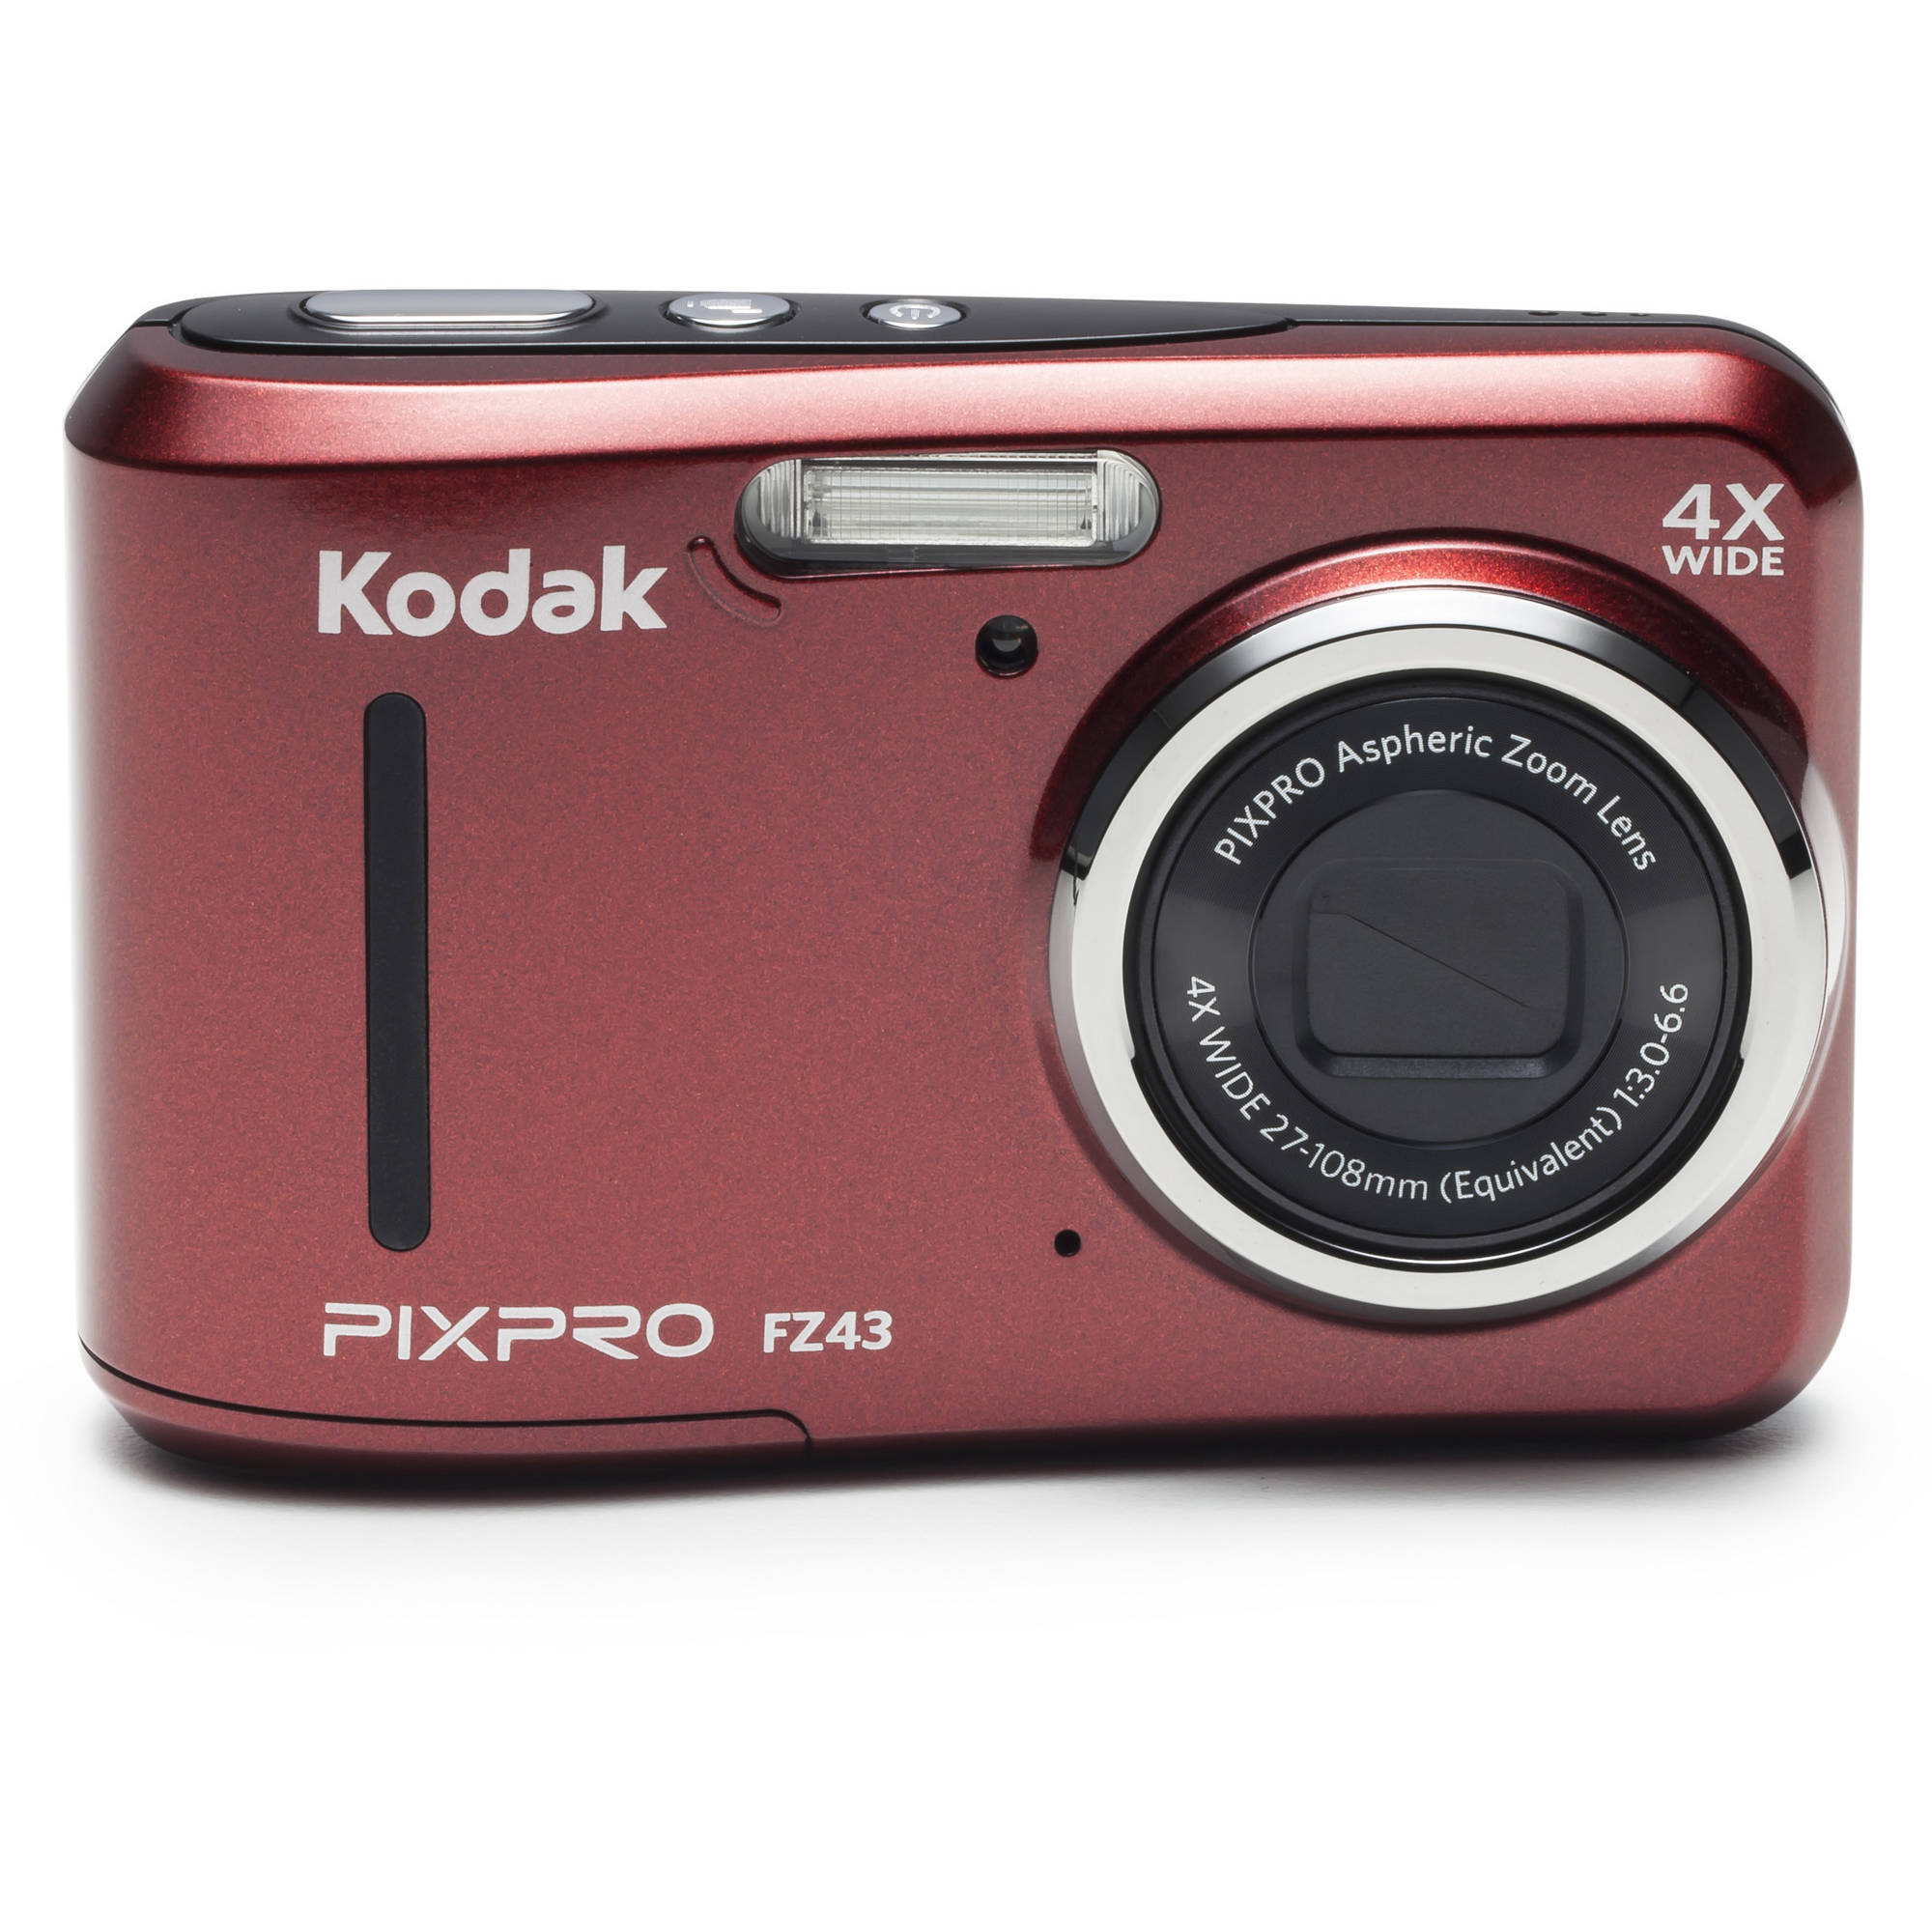 Kodak Black PIXPRO FZ43 Digital Camera with 16.15 Megapixels and 4x Optical Zoom